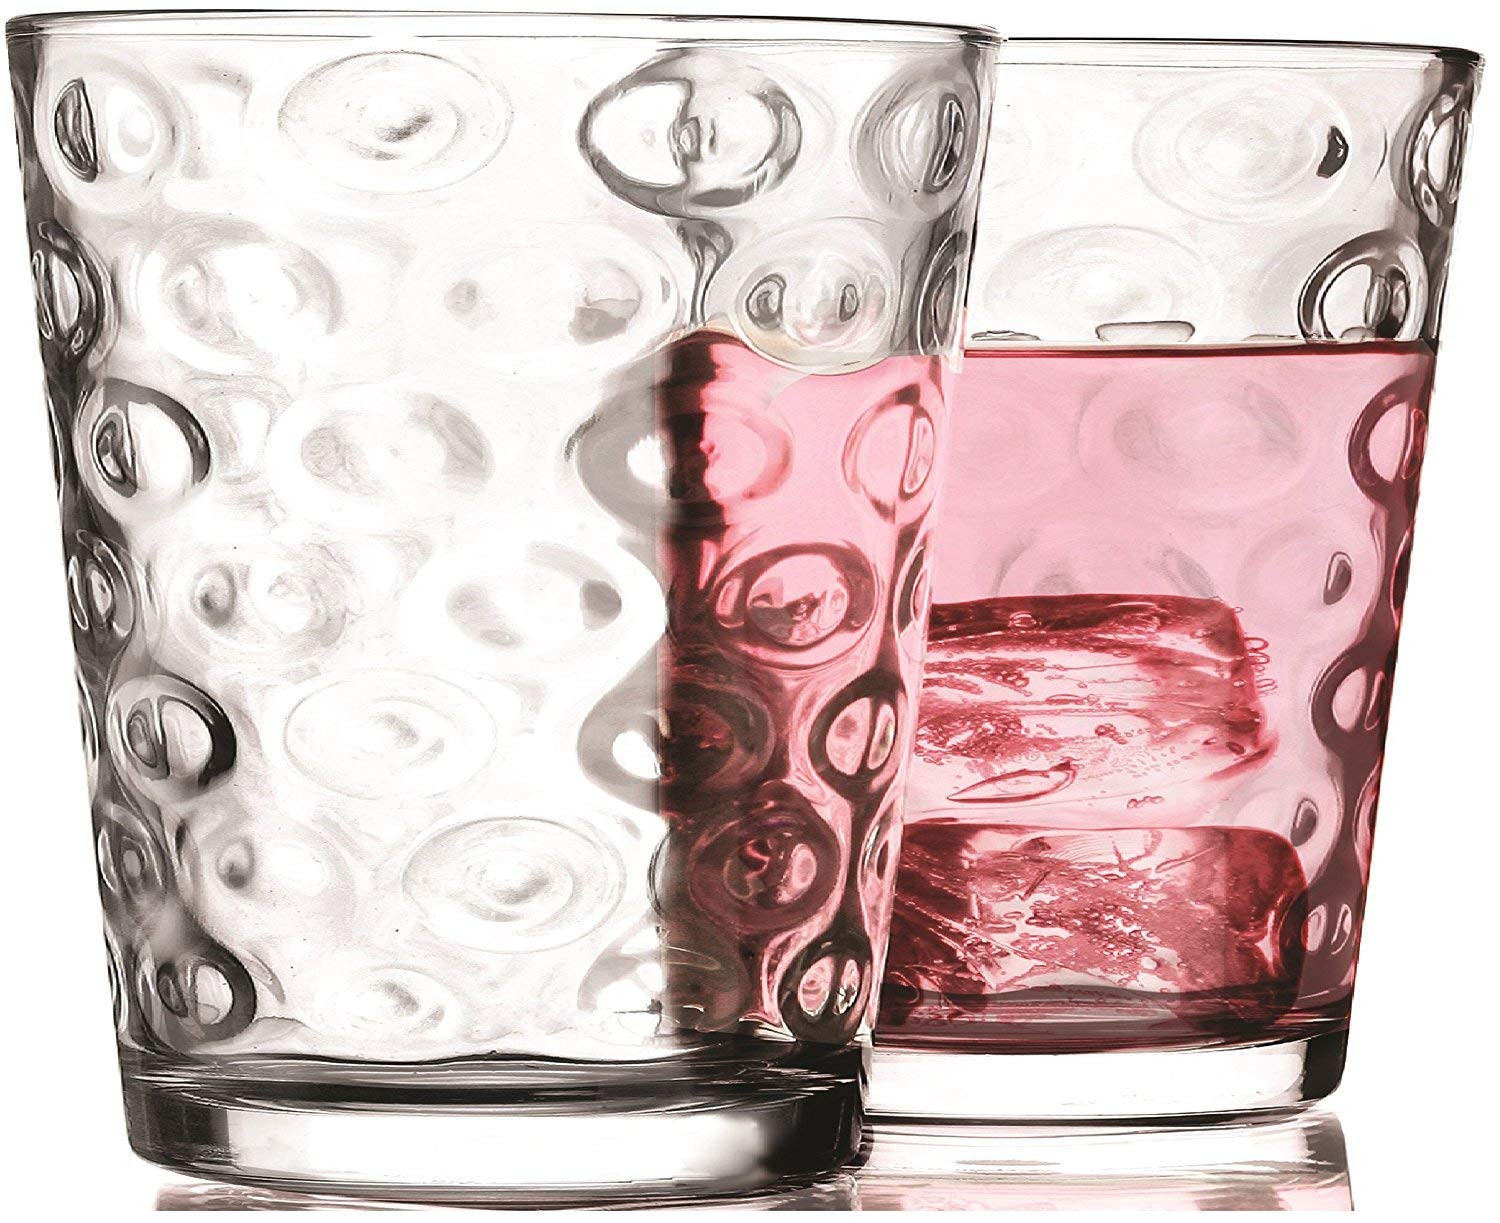 unique clear glass vases of amazon com circleware 44516 circles drinking glassware products throughout amazon com circleware 44516 circles drinking glassware products clear mixed drinkware sets